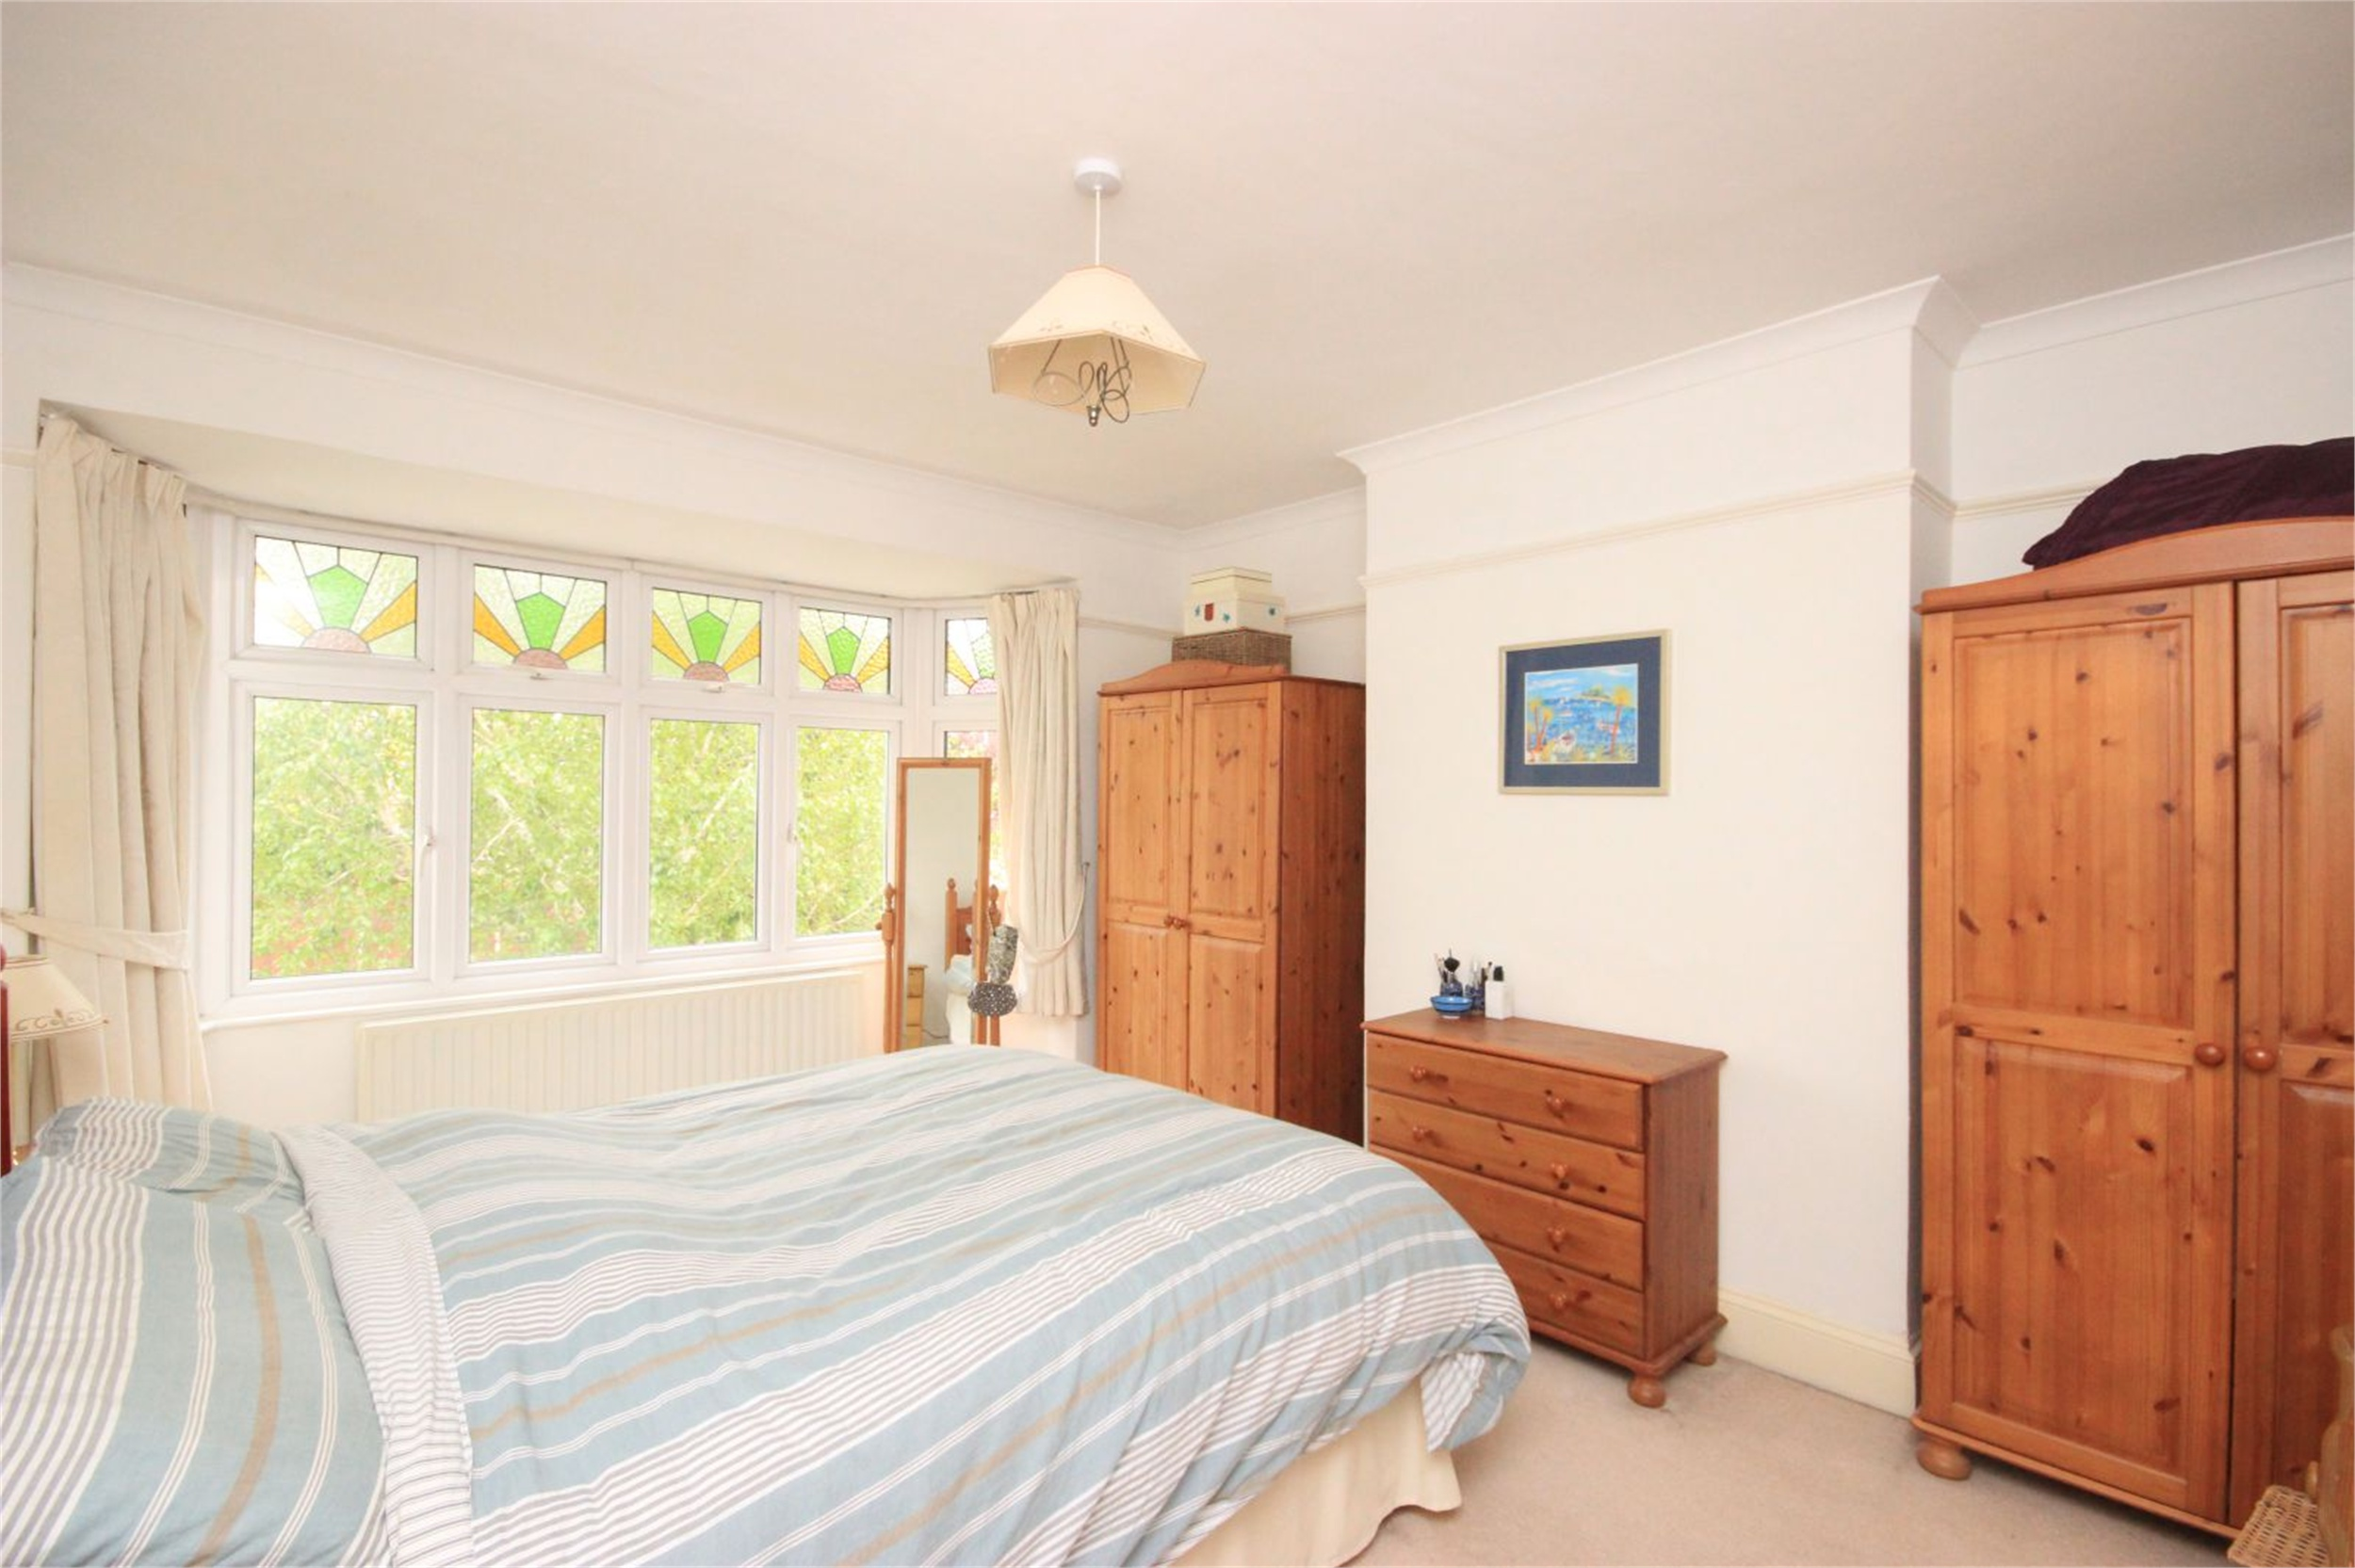 Cj Hole Henleaze 3 Bedroom Semi Detached House For Sale In